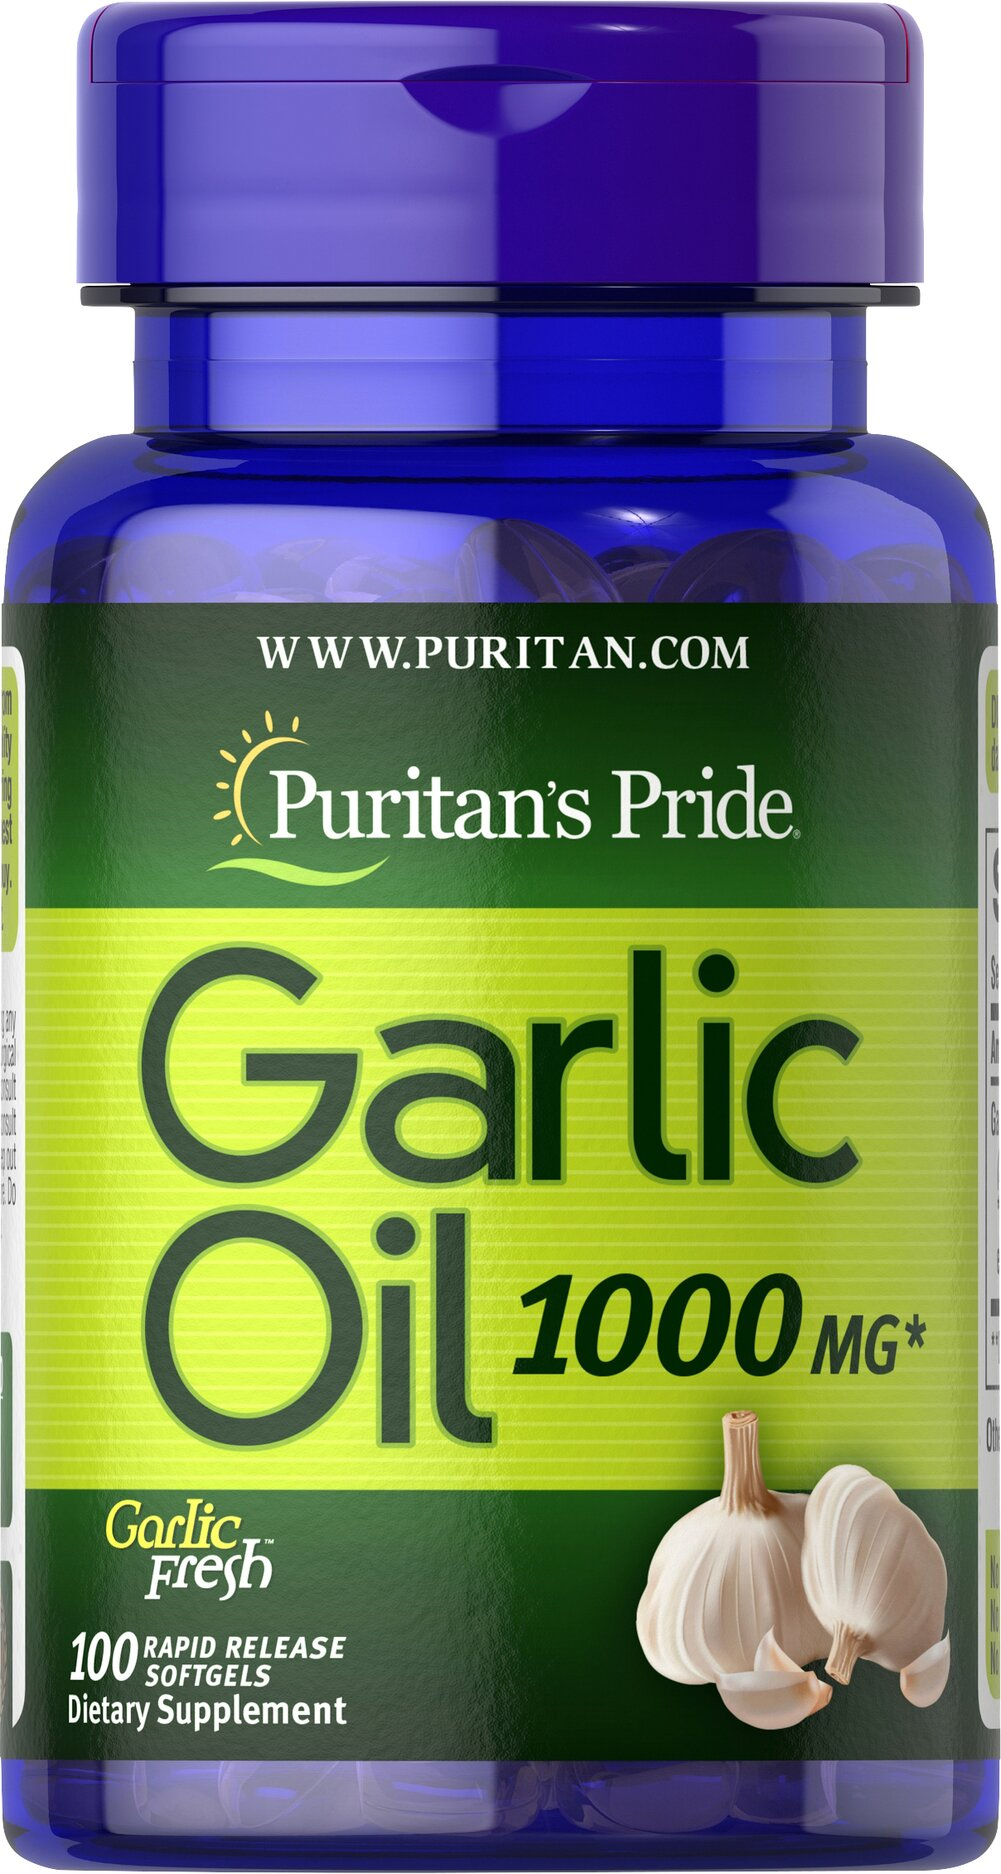 Garlic Oil 1000 mg <p>Cholesterol Support**</p><p>Supports Cardiovascular Health**</p><p>Whether warding off evil spirits or flavoring sauces, Garlic has been known for its beneficial qualities. Natural ingredients in Garlic include alliin, allinase and allicin. Garlic promotes cardiovascular health and helps to maintain cholesterol levels that are already within the normal range.**</p> 100 Softgels 1000 mg $6.99